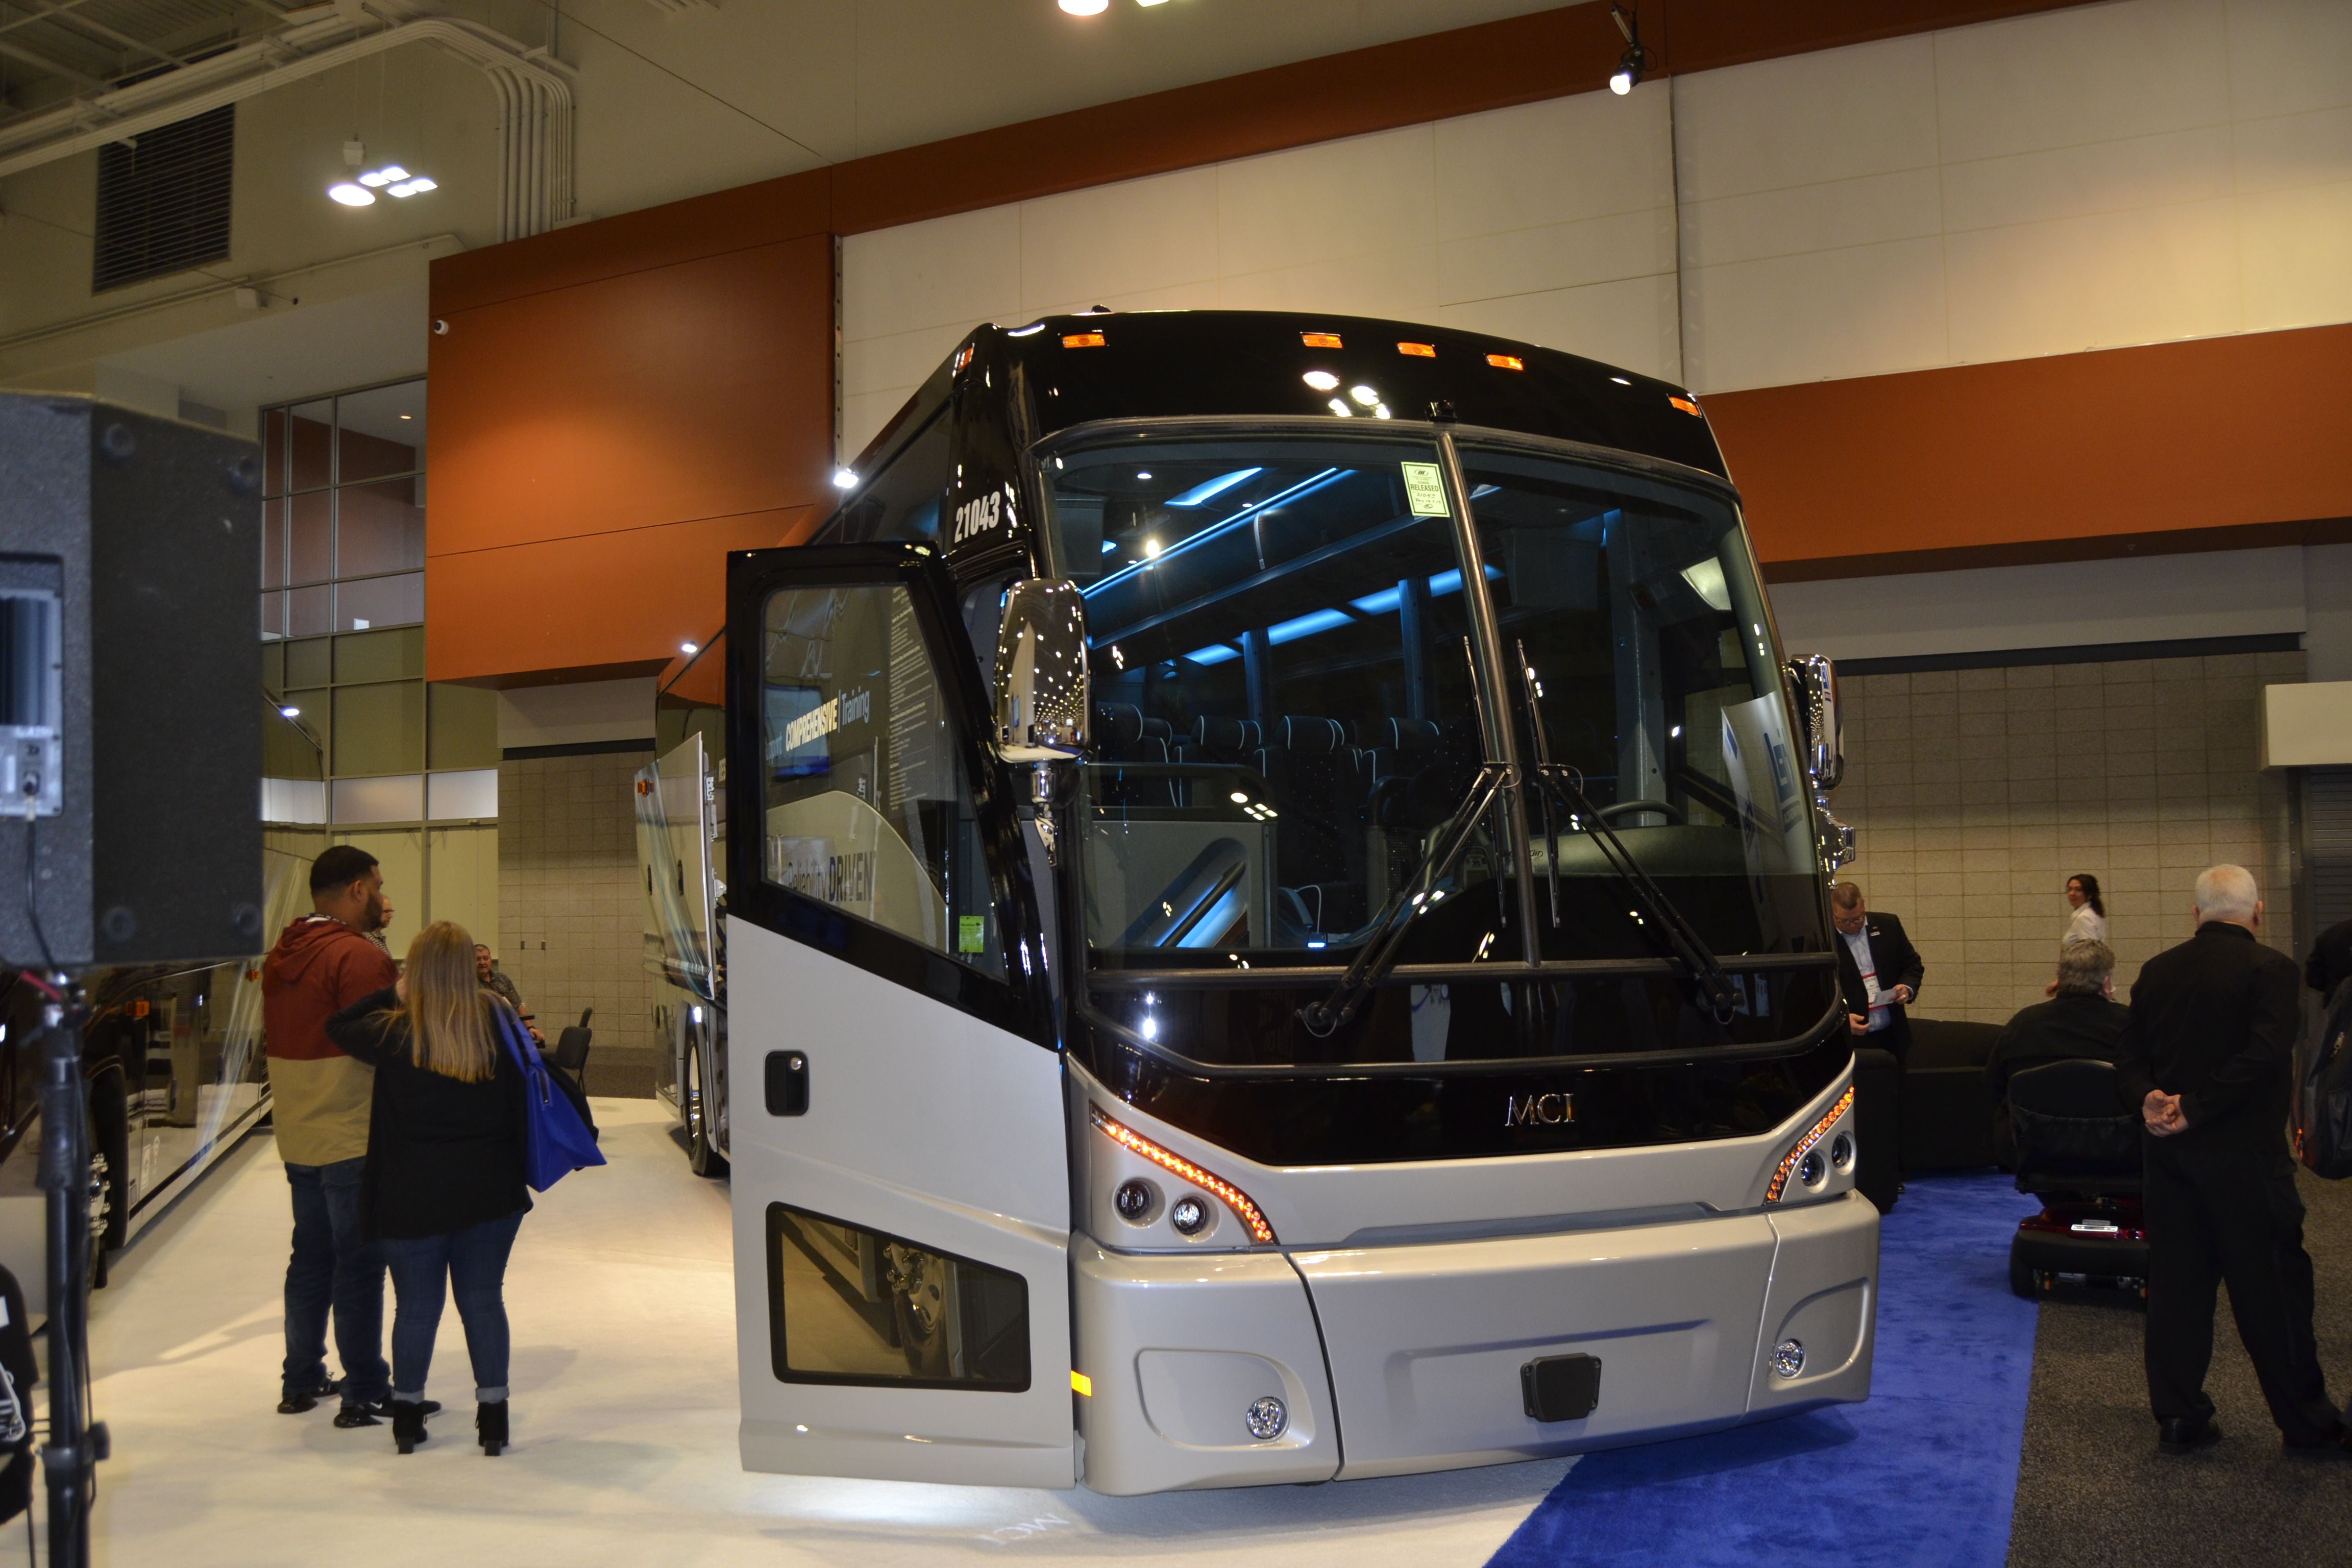 MCI discusses state of industry, new products at UMA Expo